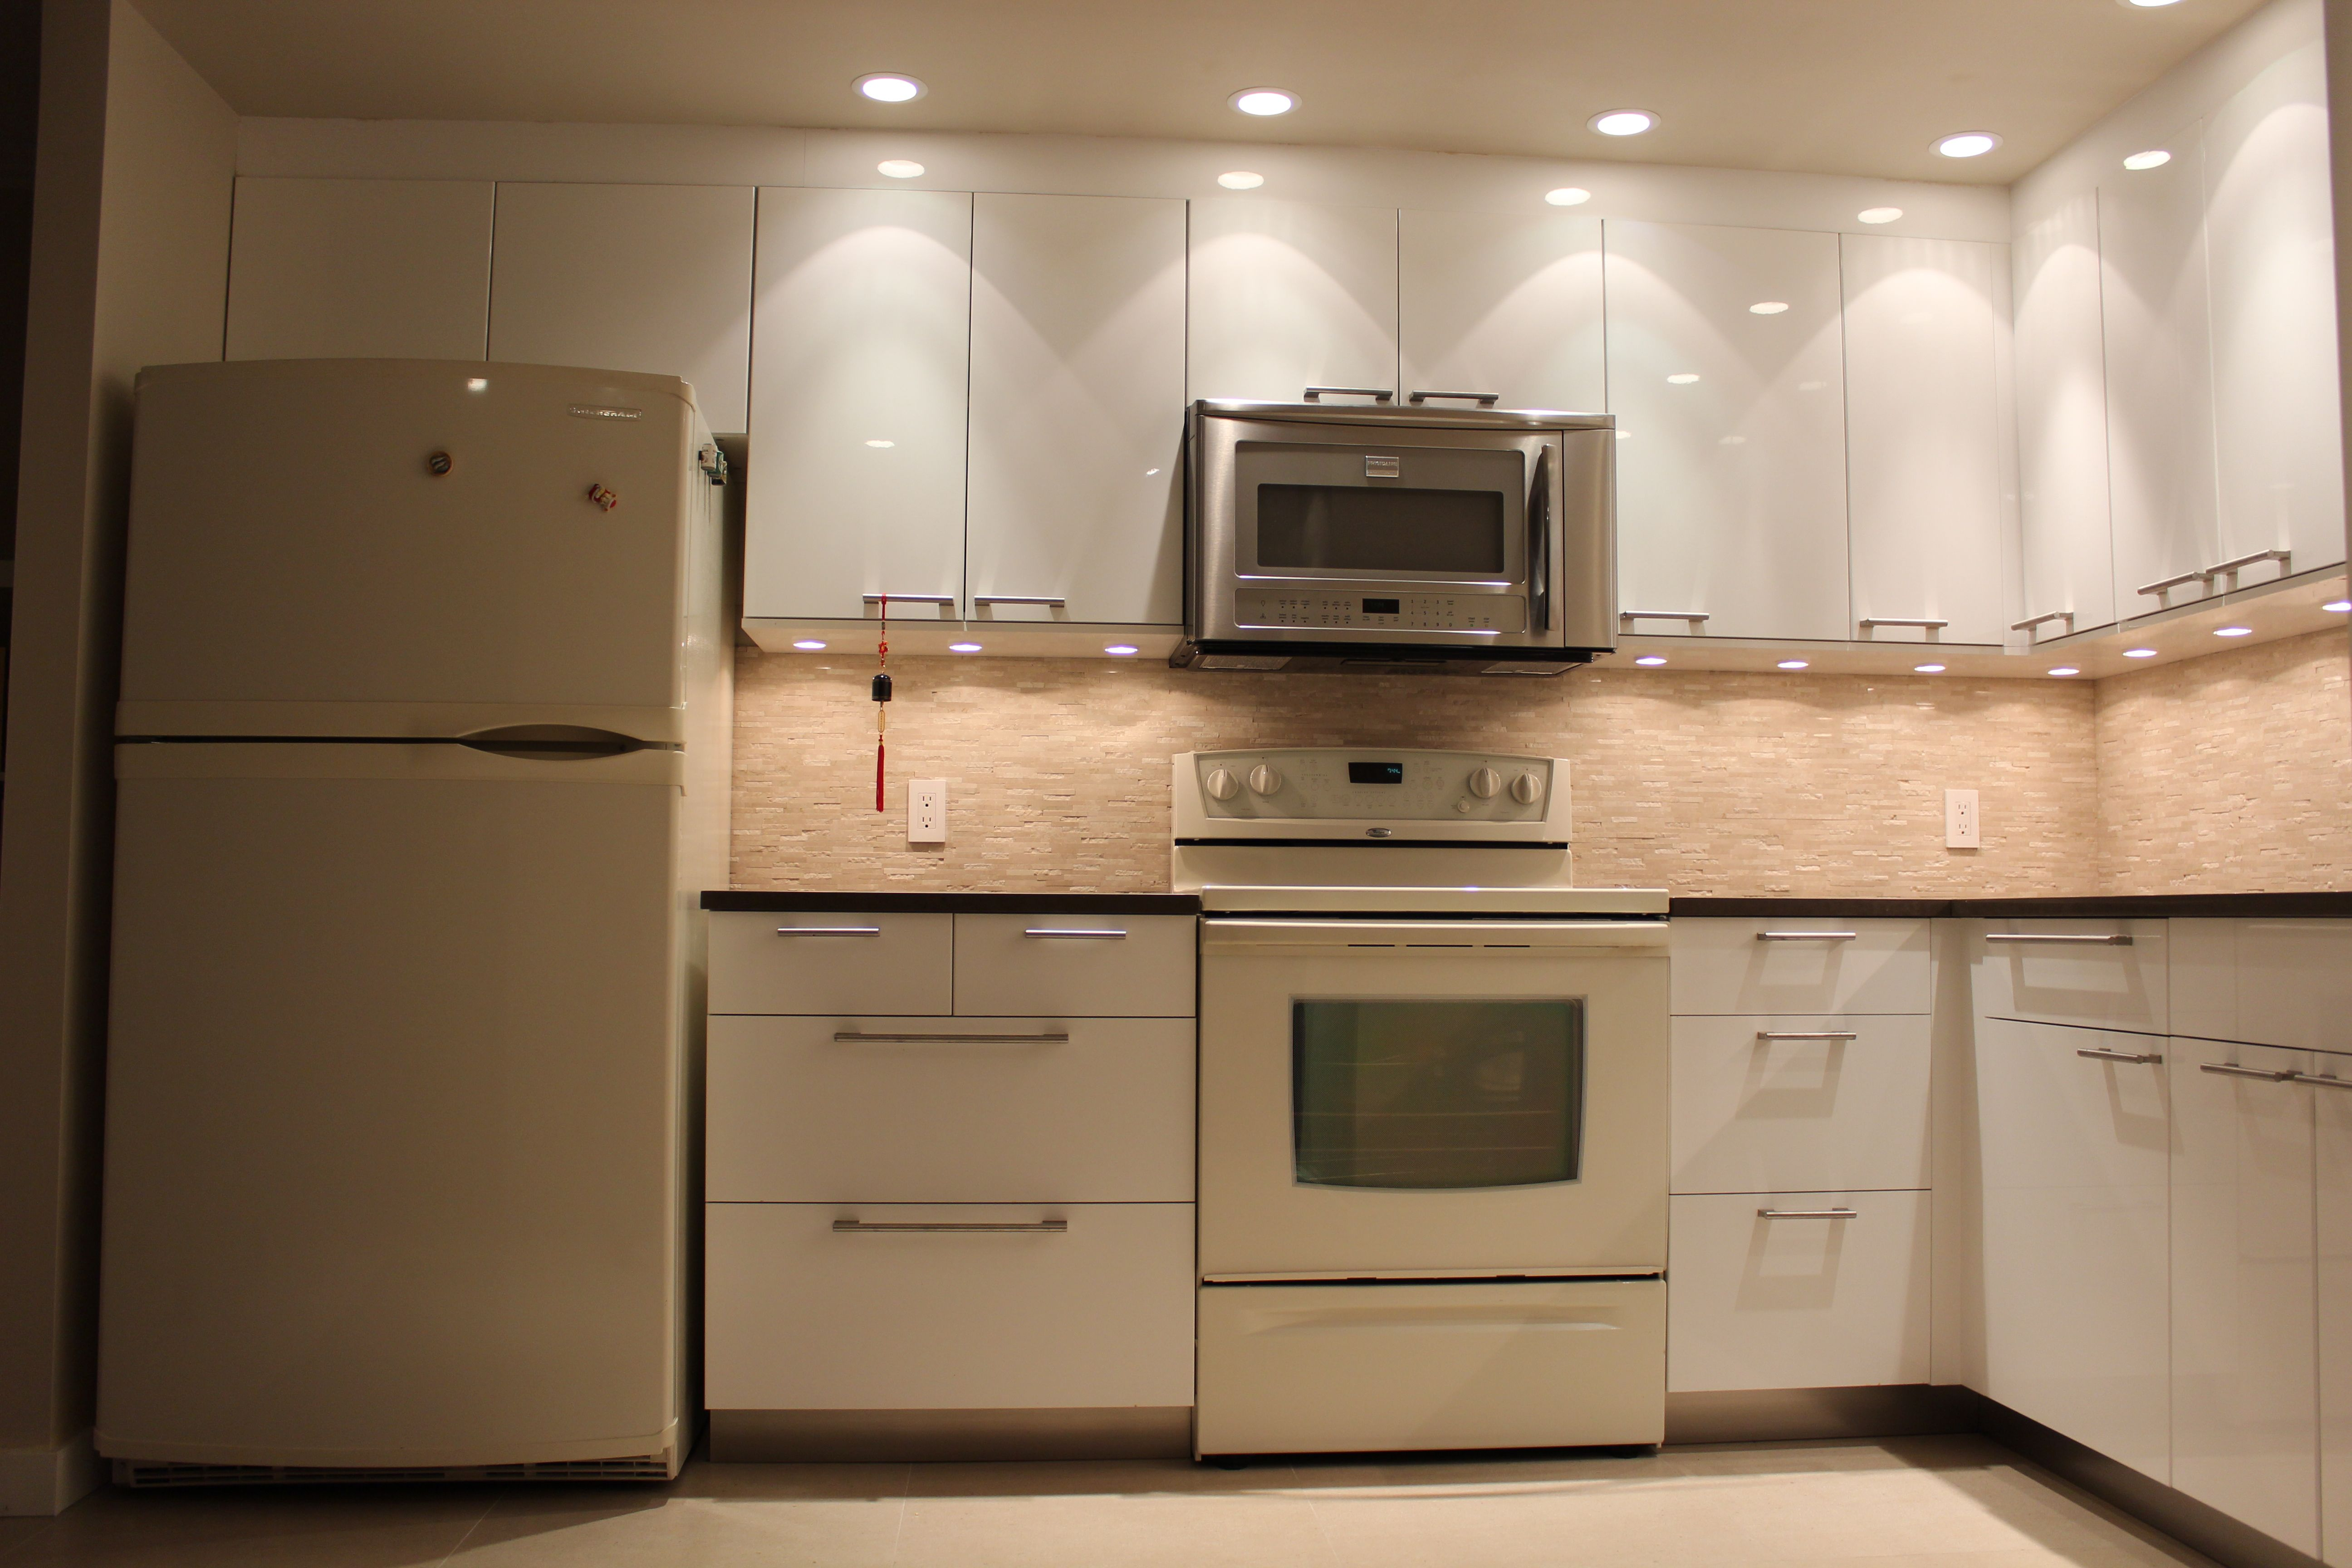 Home improvement, gloss white cabinet doors